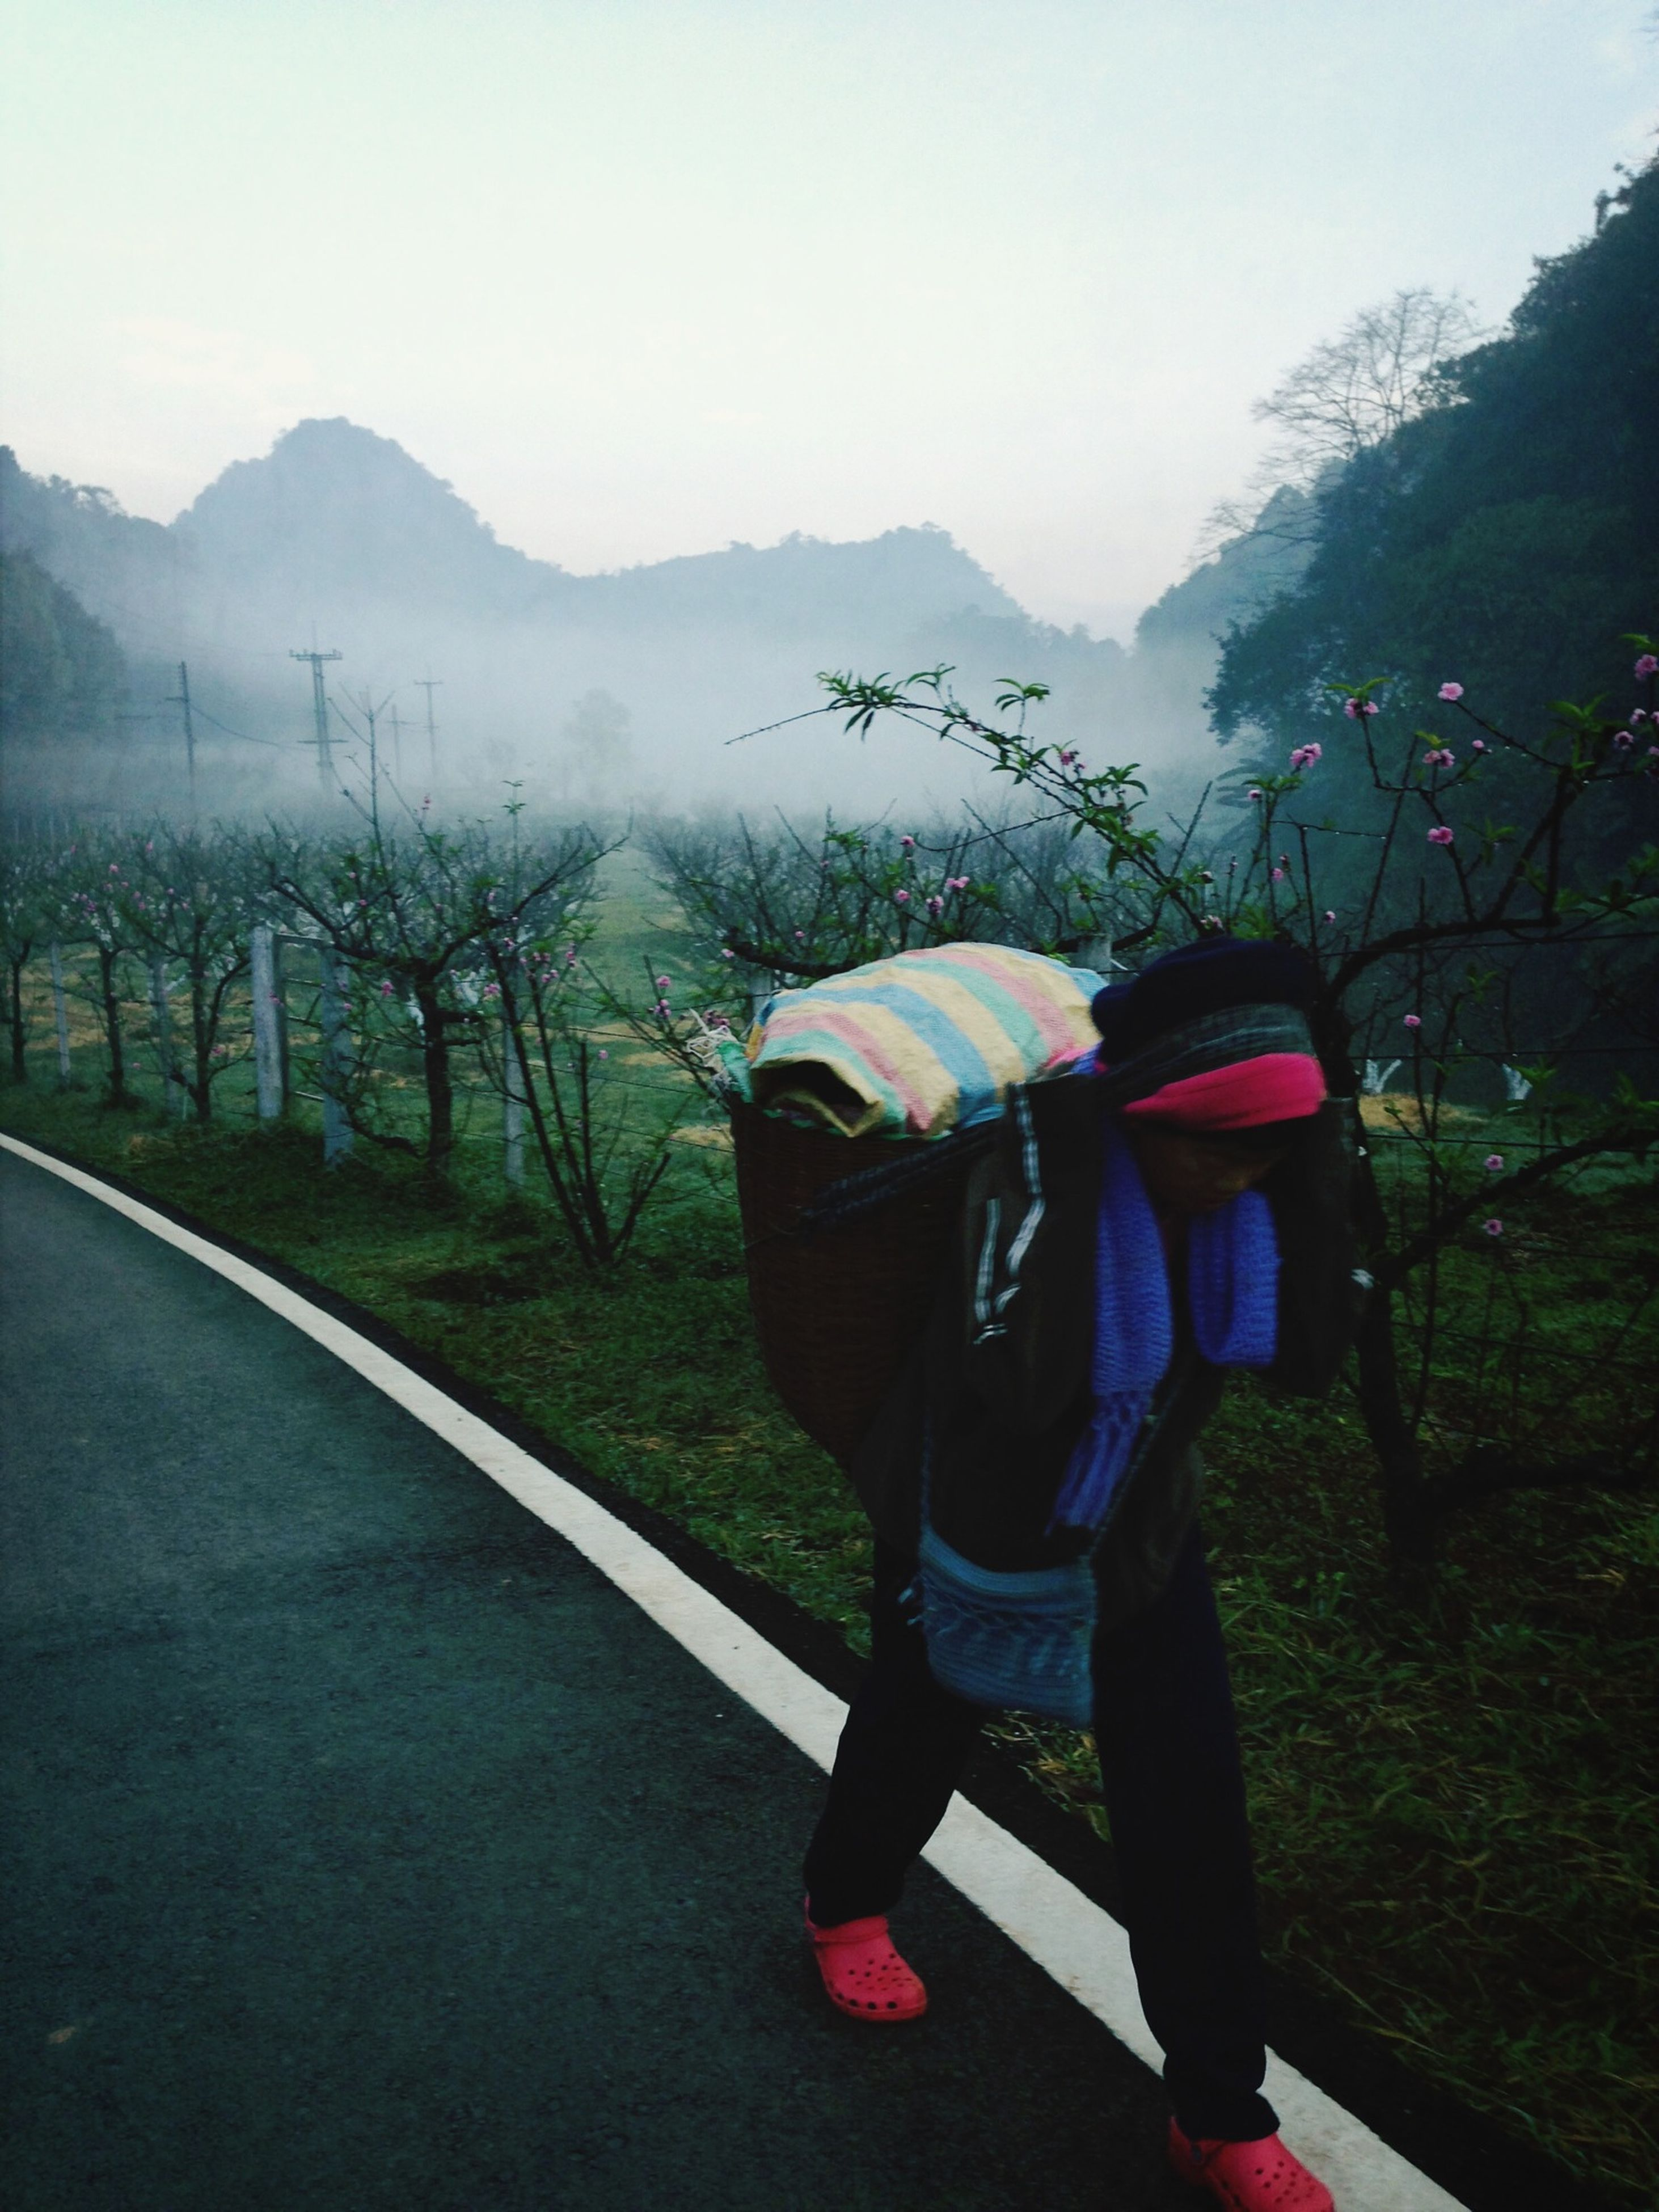 mountain, lifestyles, rear view, leisure activity, men, full length, landscape, tree, casual clothing, transportation, clear sky, mountain range, field, sky, person, nature, tranquil scene